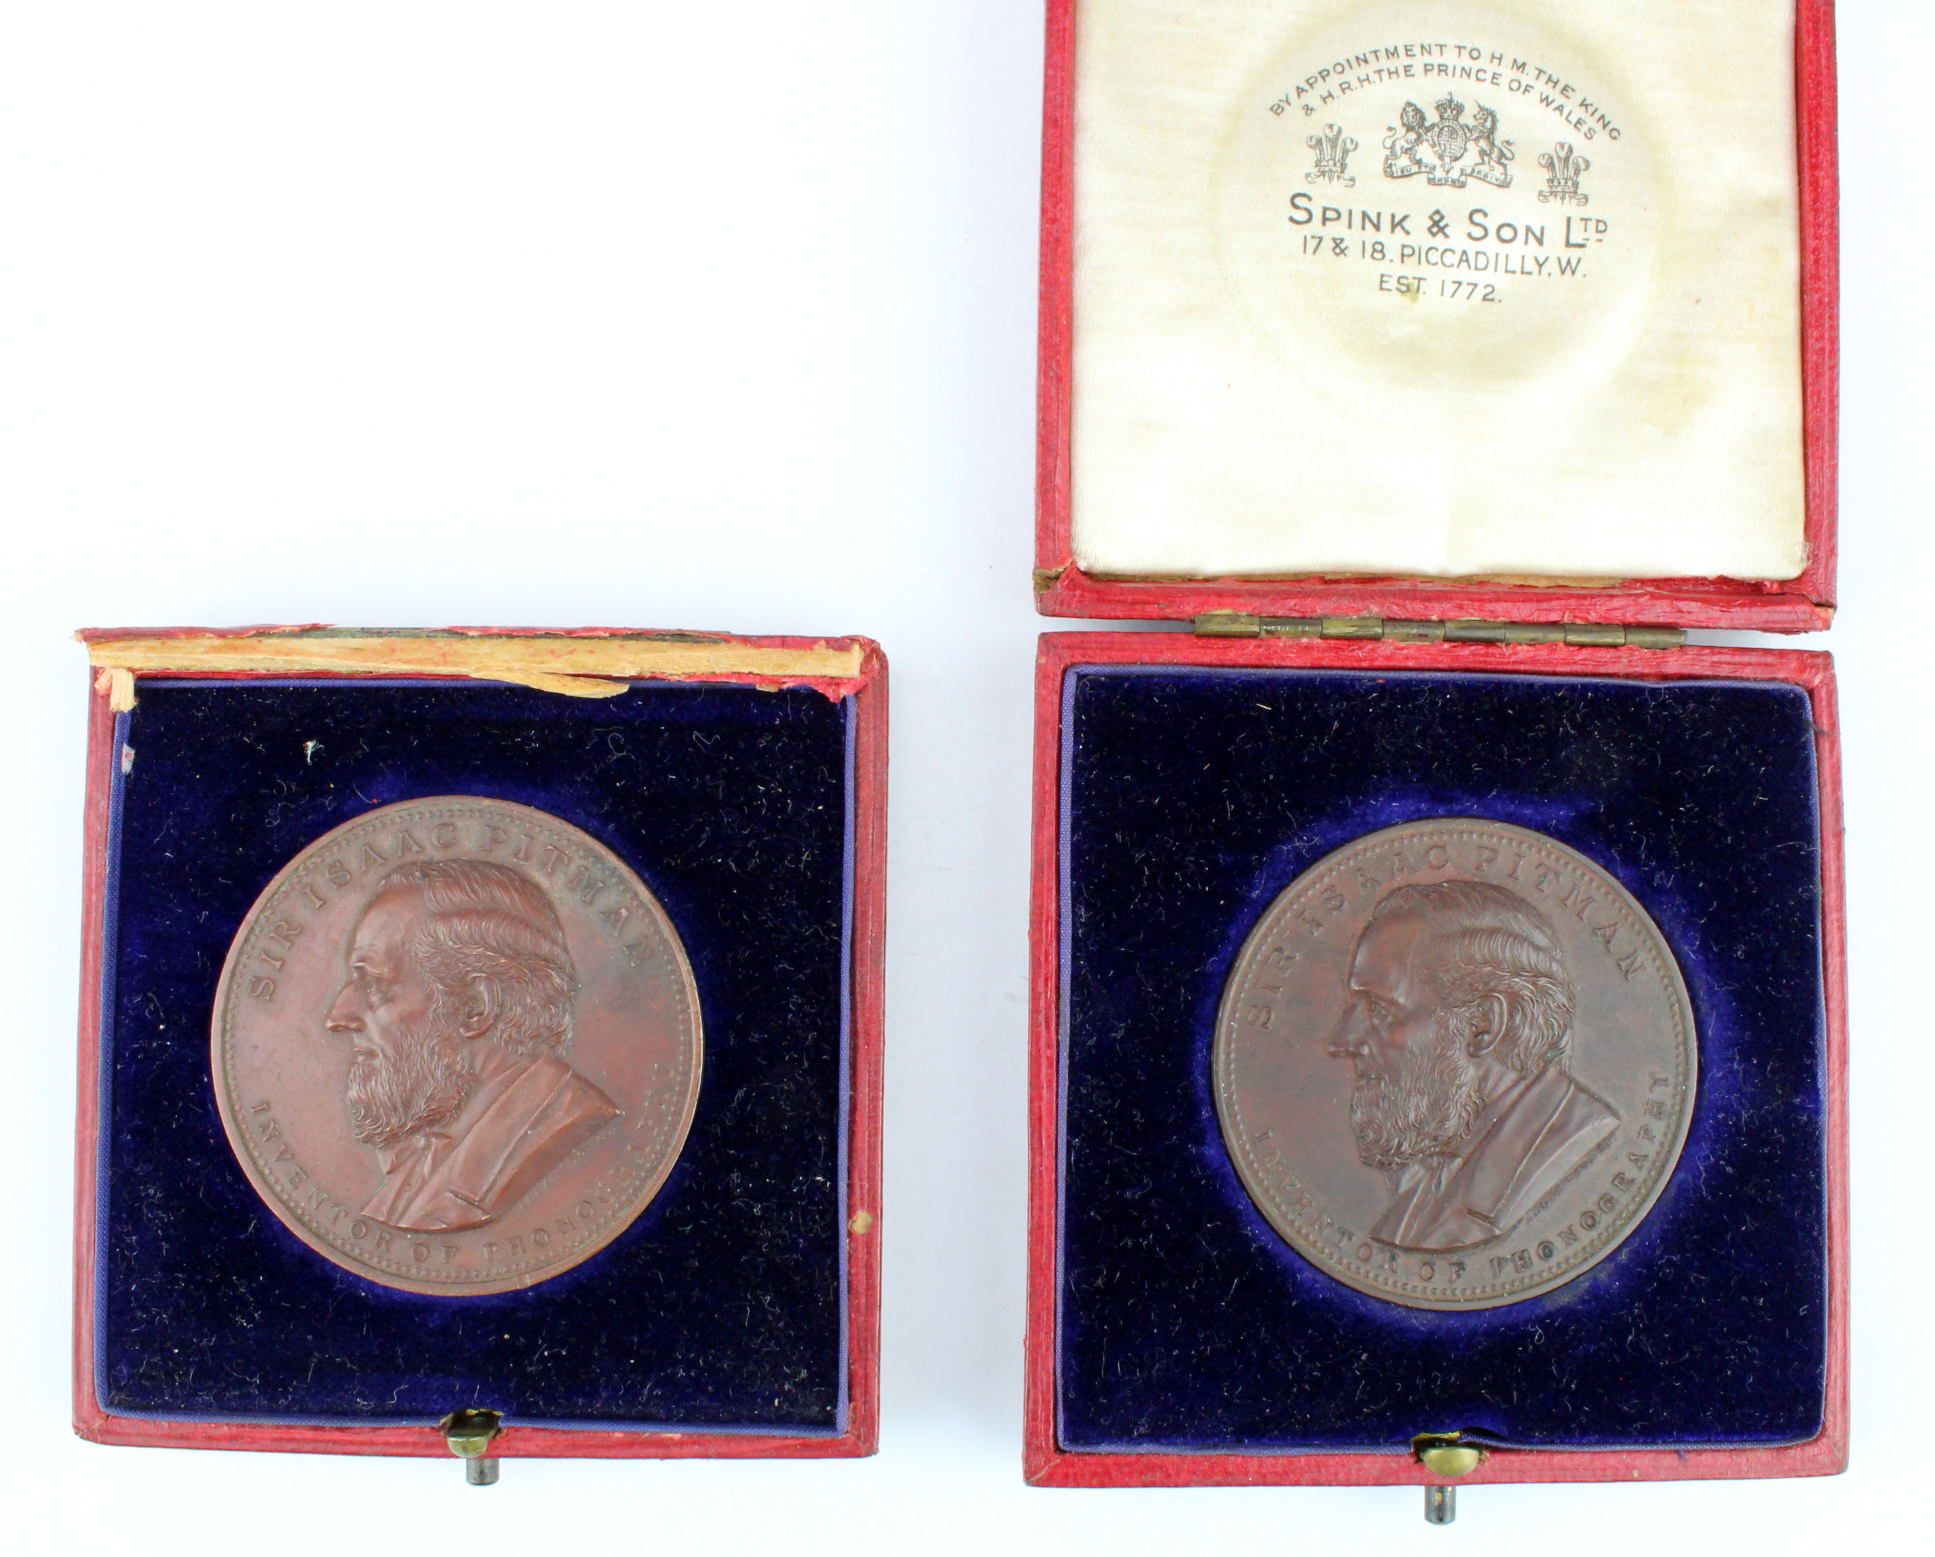 Pitman Typing Medals (2) bronze d.41.5mm, both named to GEORGE DOSWELL c.1909, aEF both cased, one